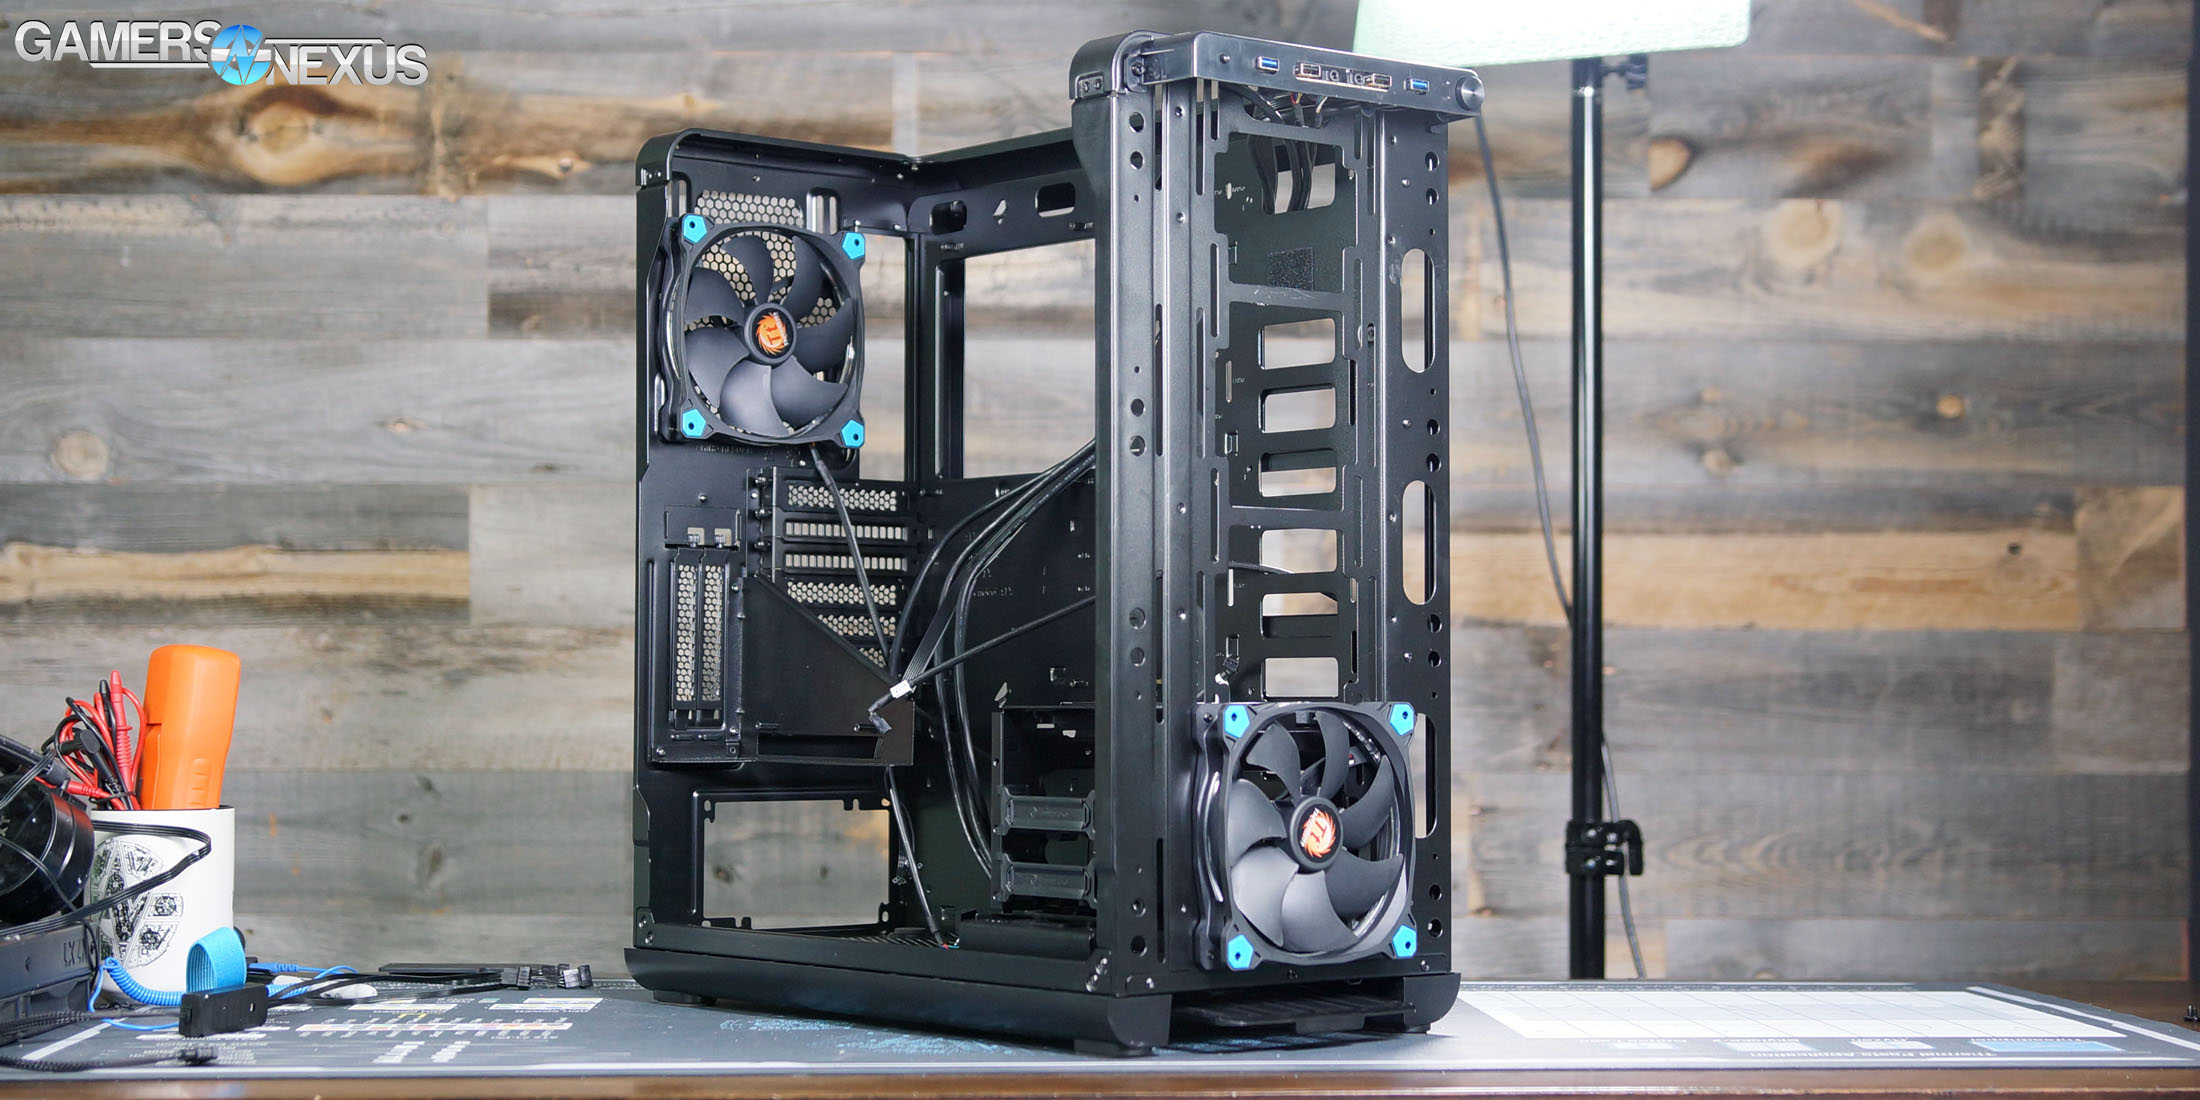 Thermaltake View 37 Case Review - Better Than Expected